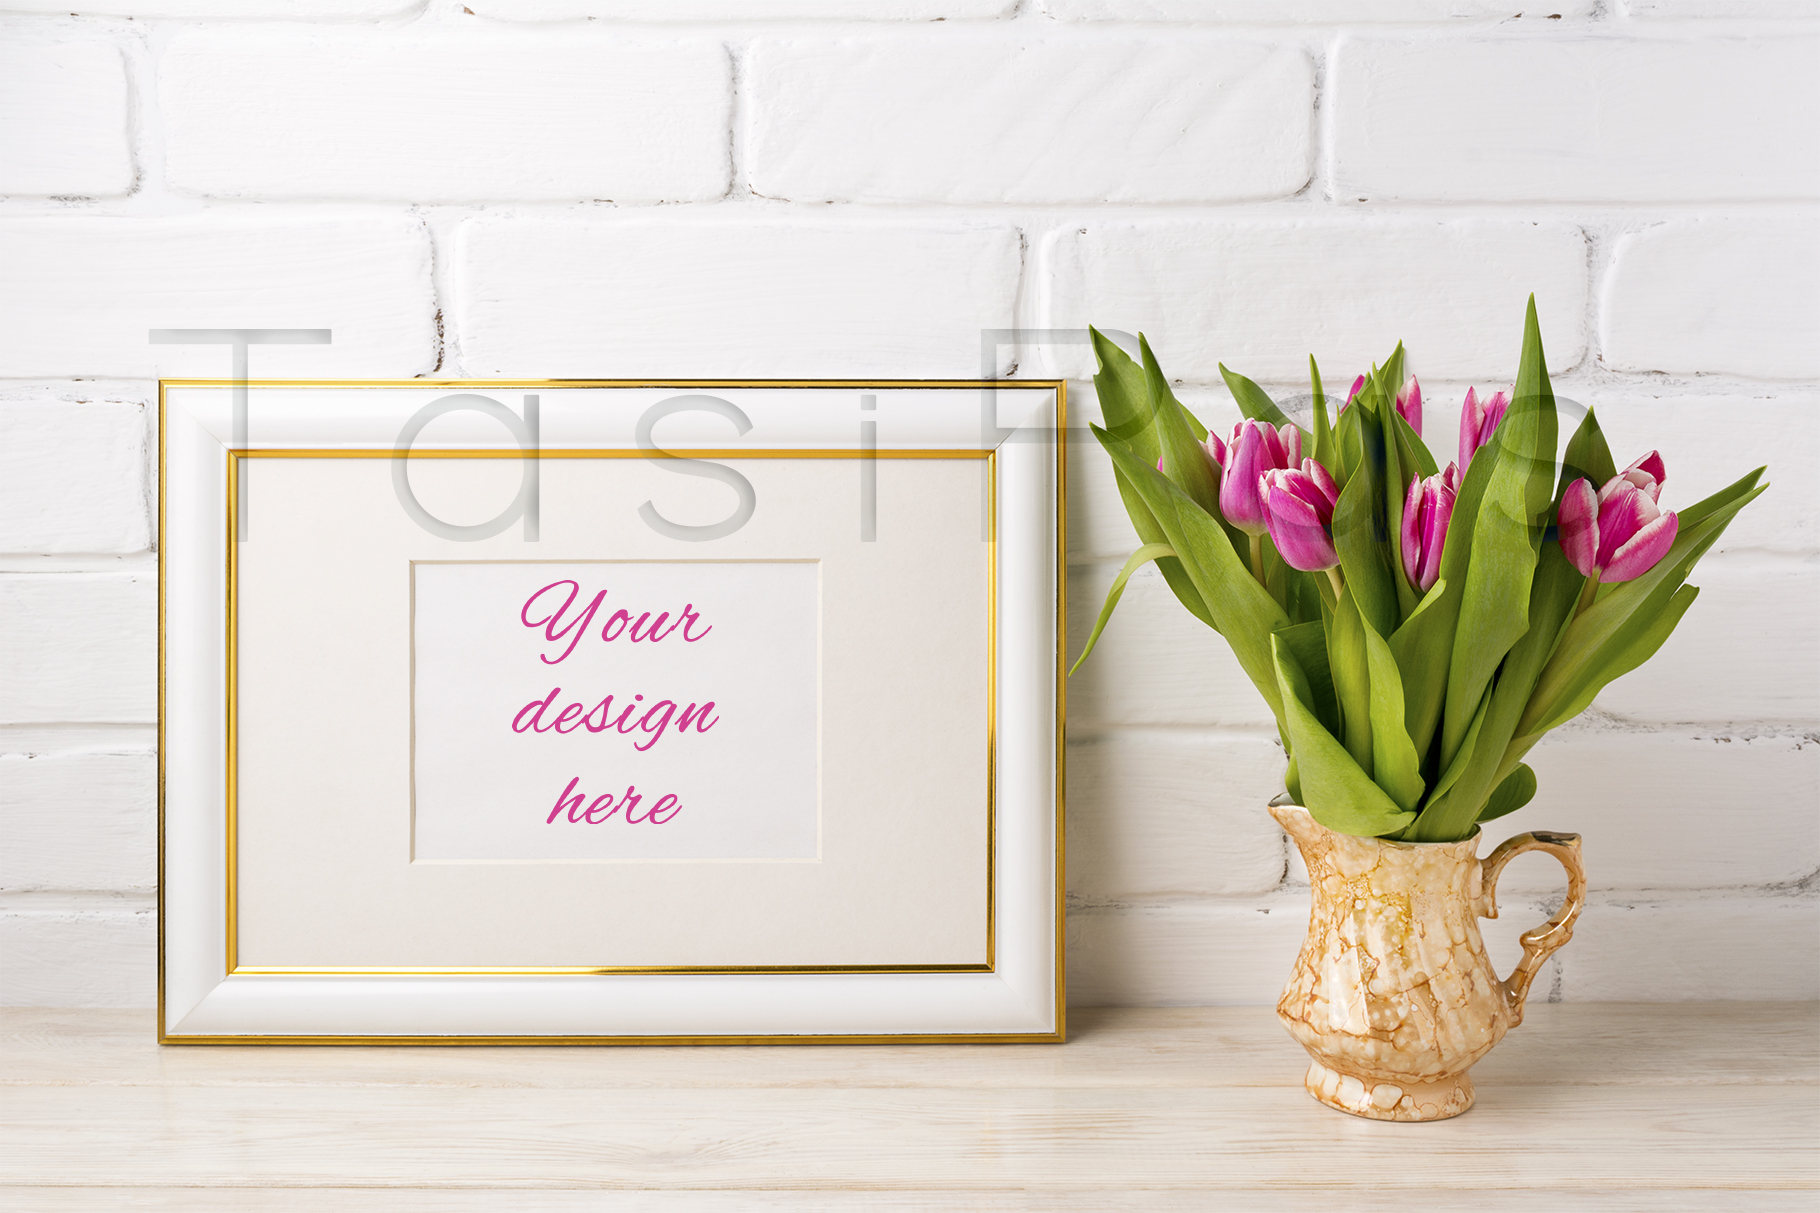 Gold Decorated Landscape Frame Mockup with Bright Pink Tulips in Golden Vase Graphic By TasiPas